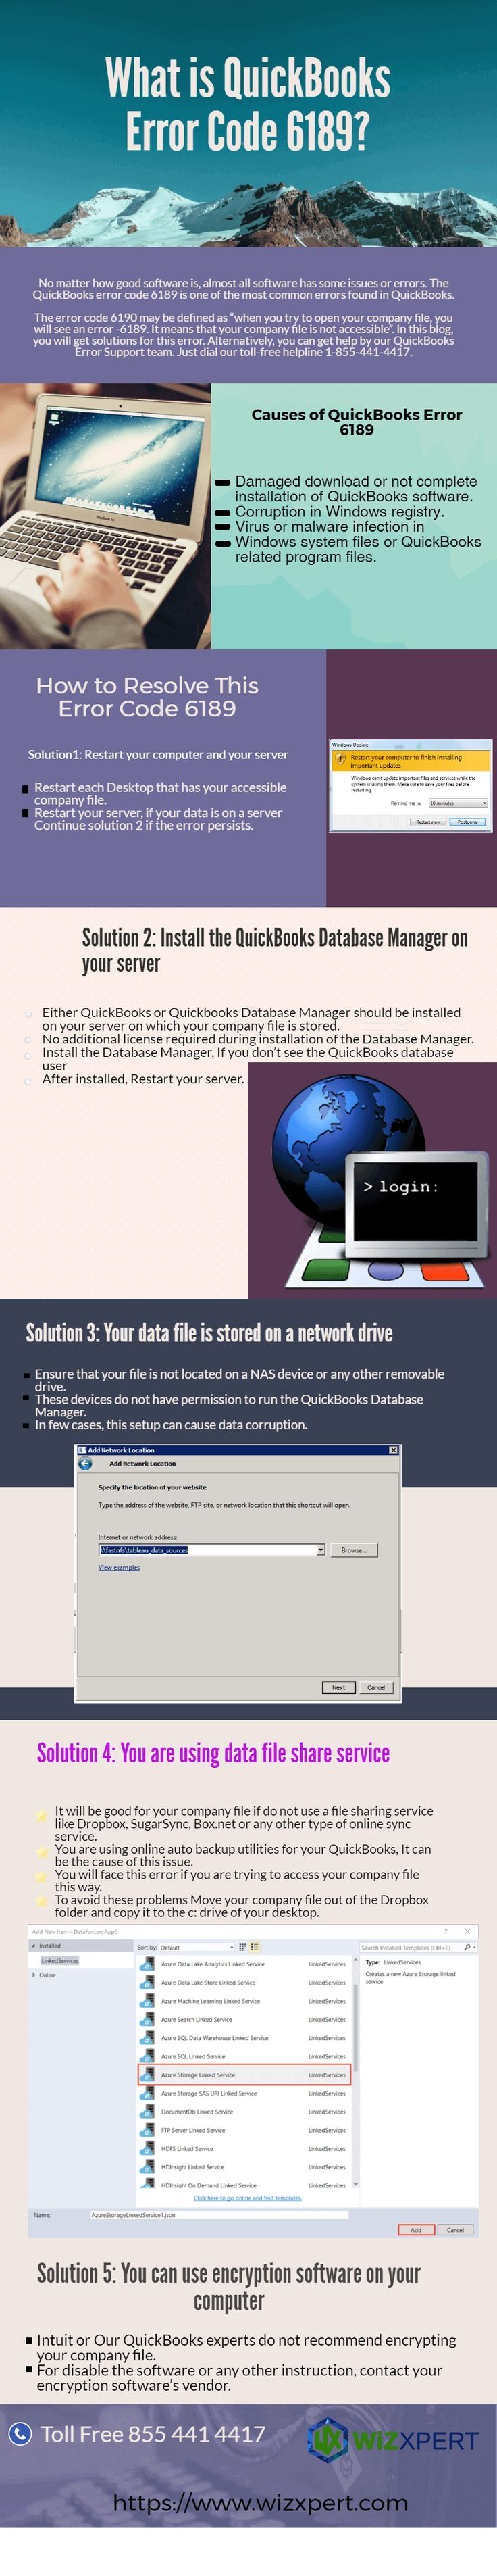 Error 6189 usually occurs when trying to open the company file (.qbw) that is stored in a folder that is on the same computer that runs QB Data server i.e. single user configuration on the computer hosting the company file in a multi user configuration. For more information visit https://www.wizxpert.com/infographics/quickbooks-error-code-6189/